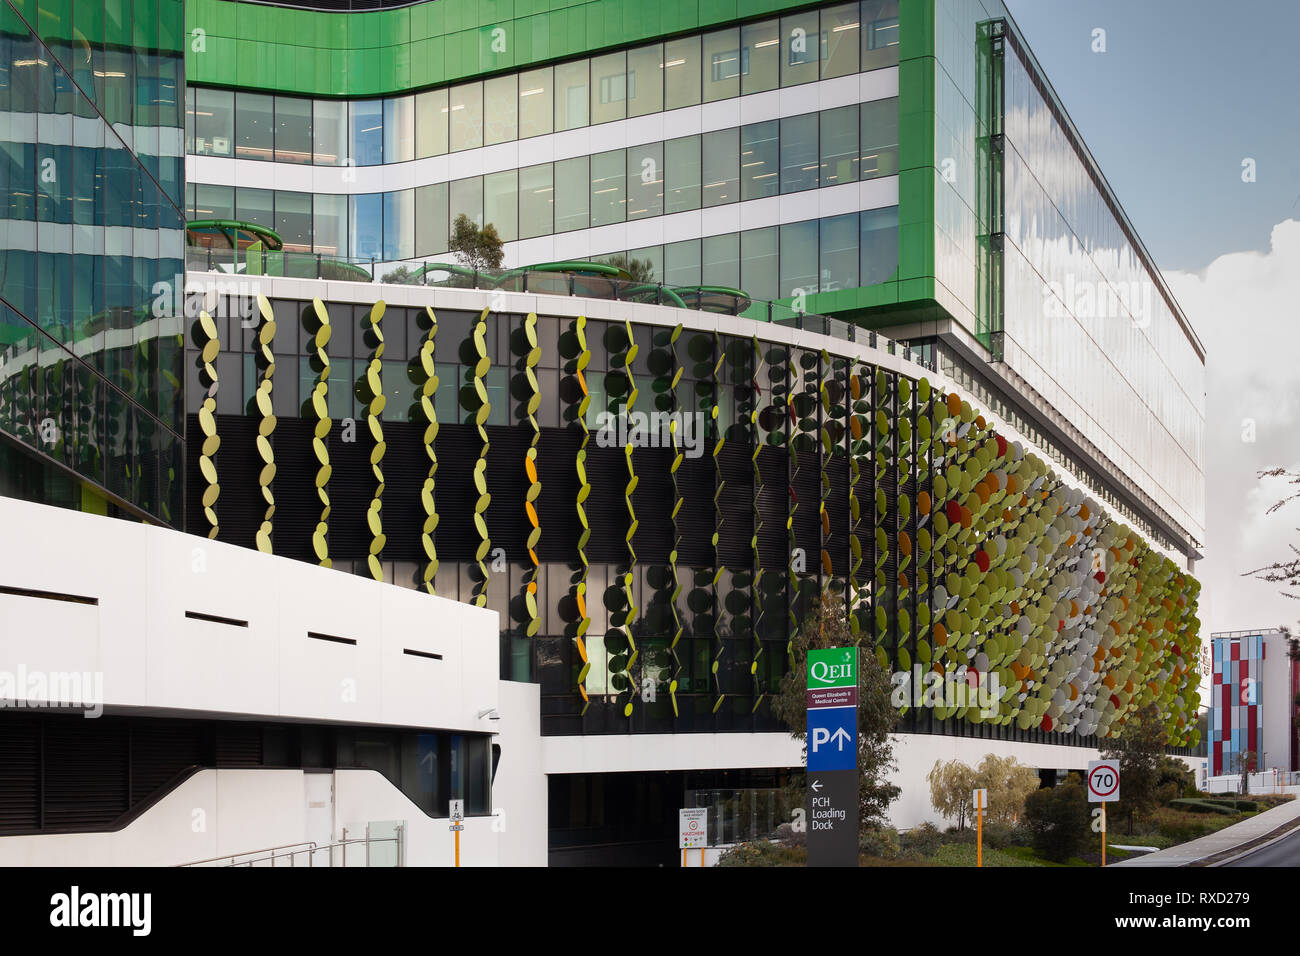 Hospital Wa Stock Photos & Hospital Wa Stock Images - Alamy